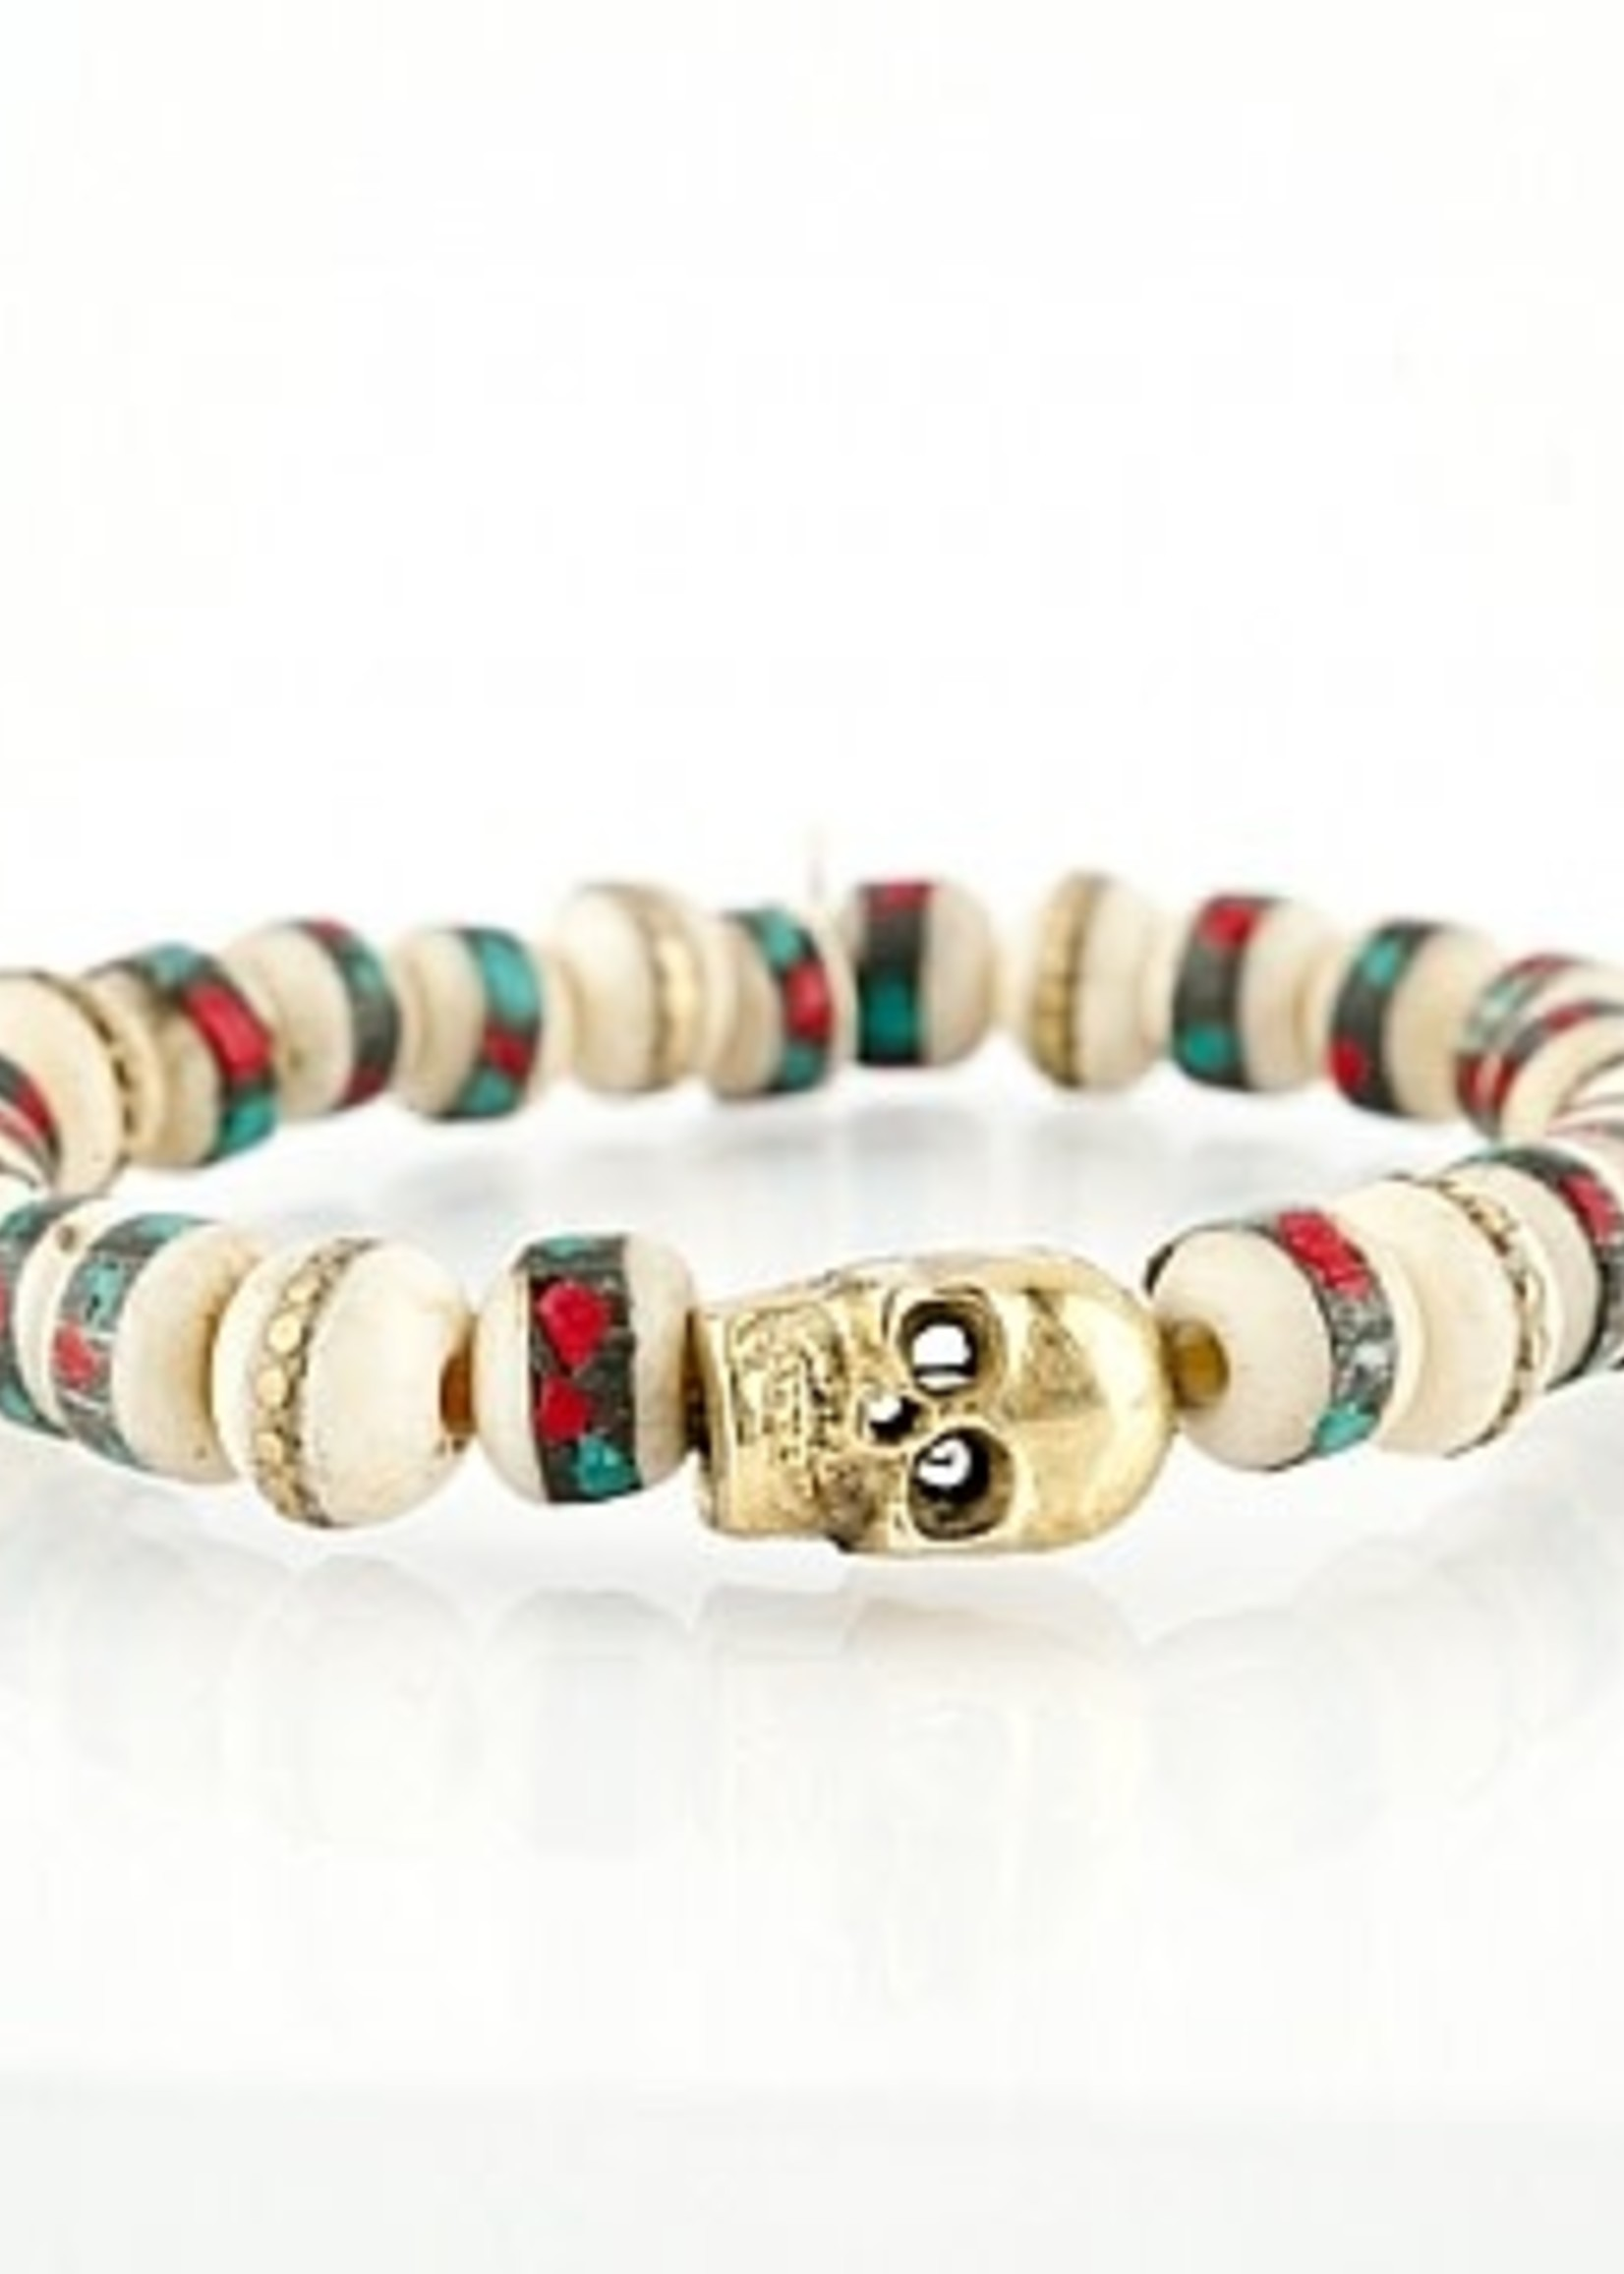 Mina Danielle Coral and Turquoise Inlaid Beads with Gold Tibetan Beads